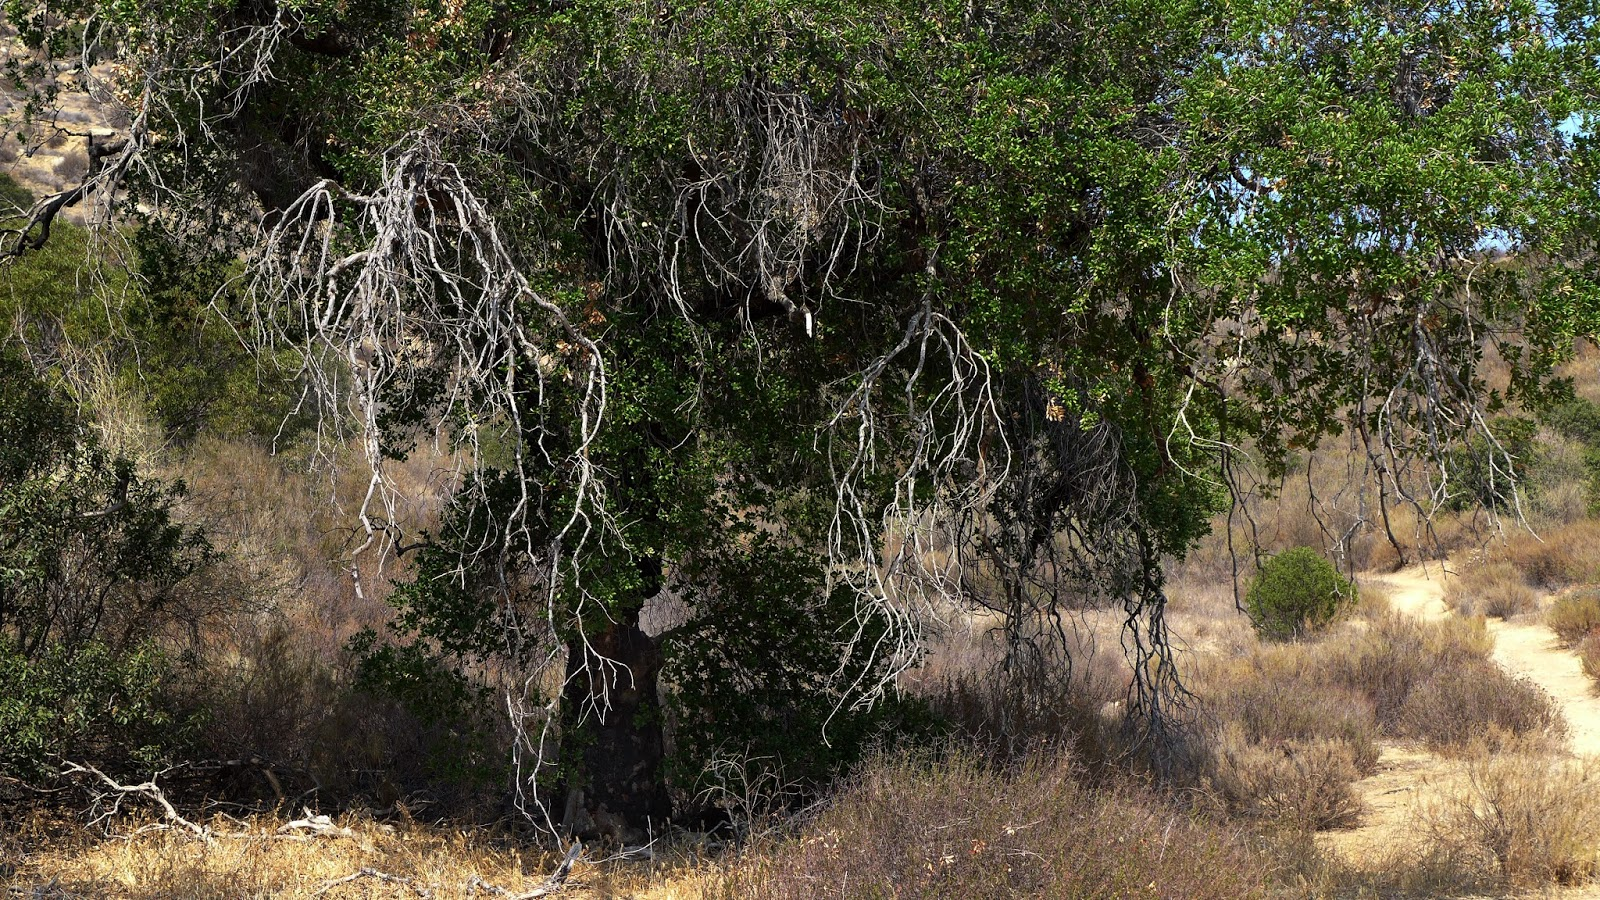 Extremely Powerful - Corriganville Park, Simi Valley, CA